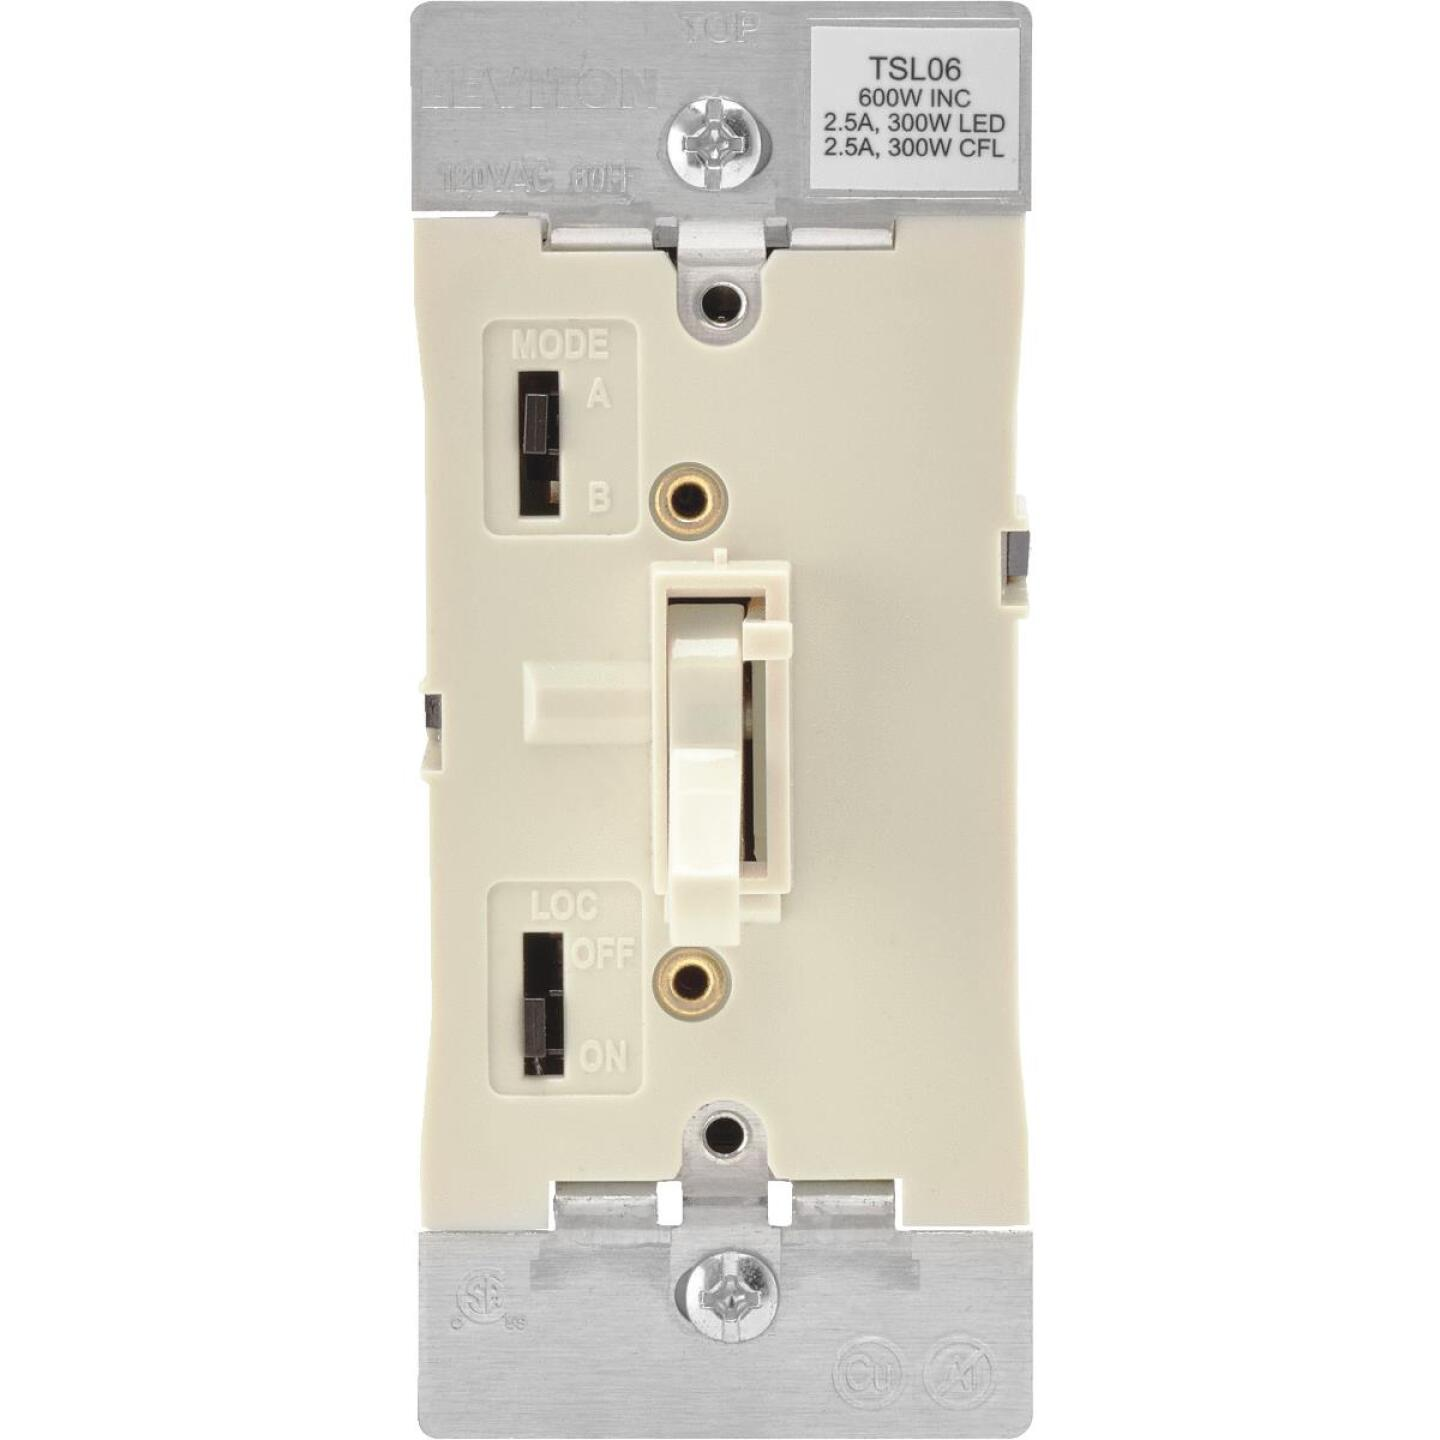 Leviton Incandescent/Halogen/LED/CFL Light Almond Slide Dimmer Switch Image 1